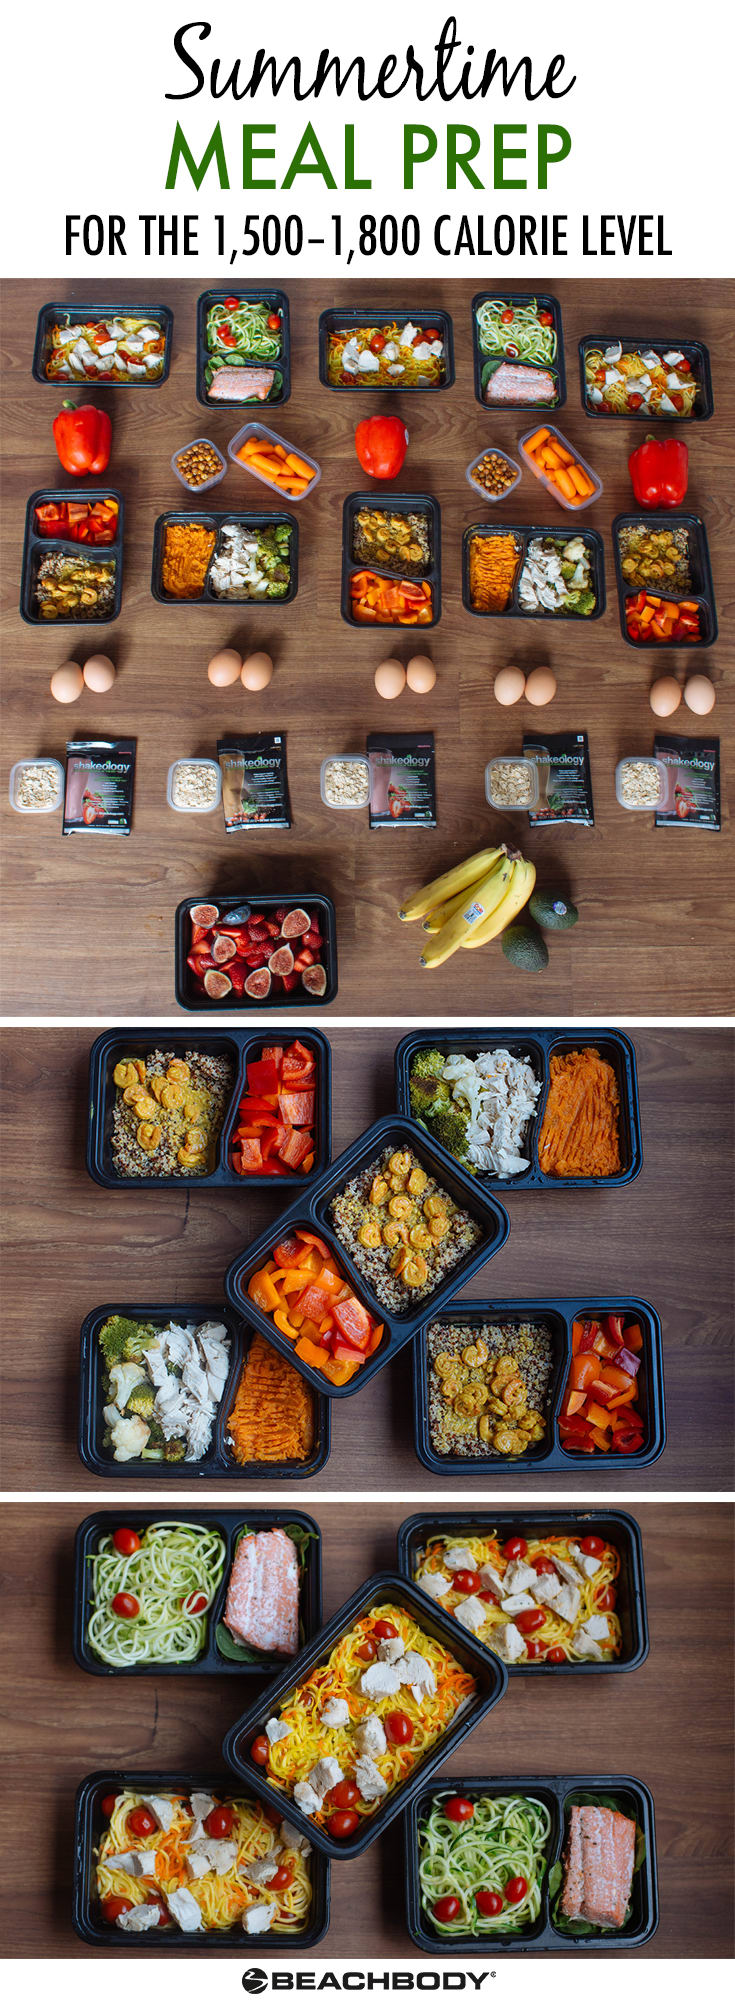 Summertime Meal Prep for the 1,500–1,800 Calorie Level #summermeals #summerrecipes #mealprep #healthymeals #healthyeating #mealplans #mealplanning #mealplan